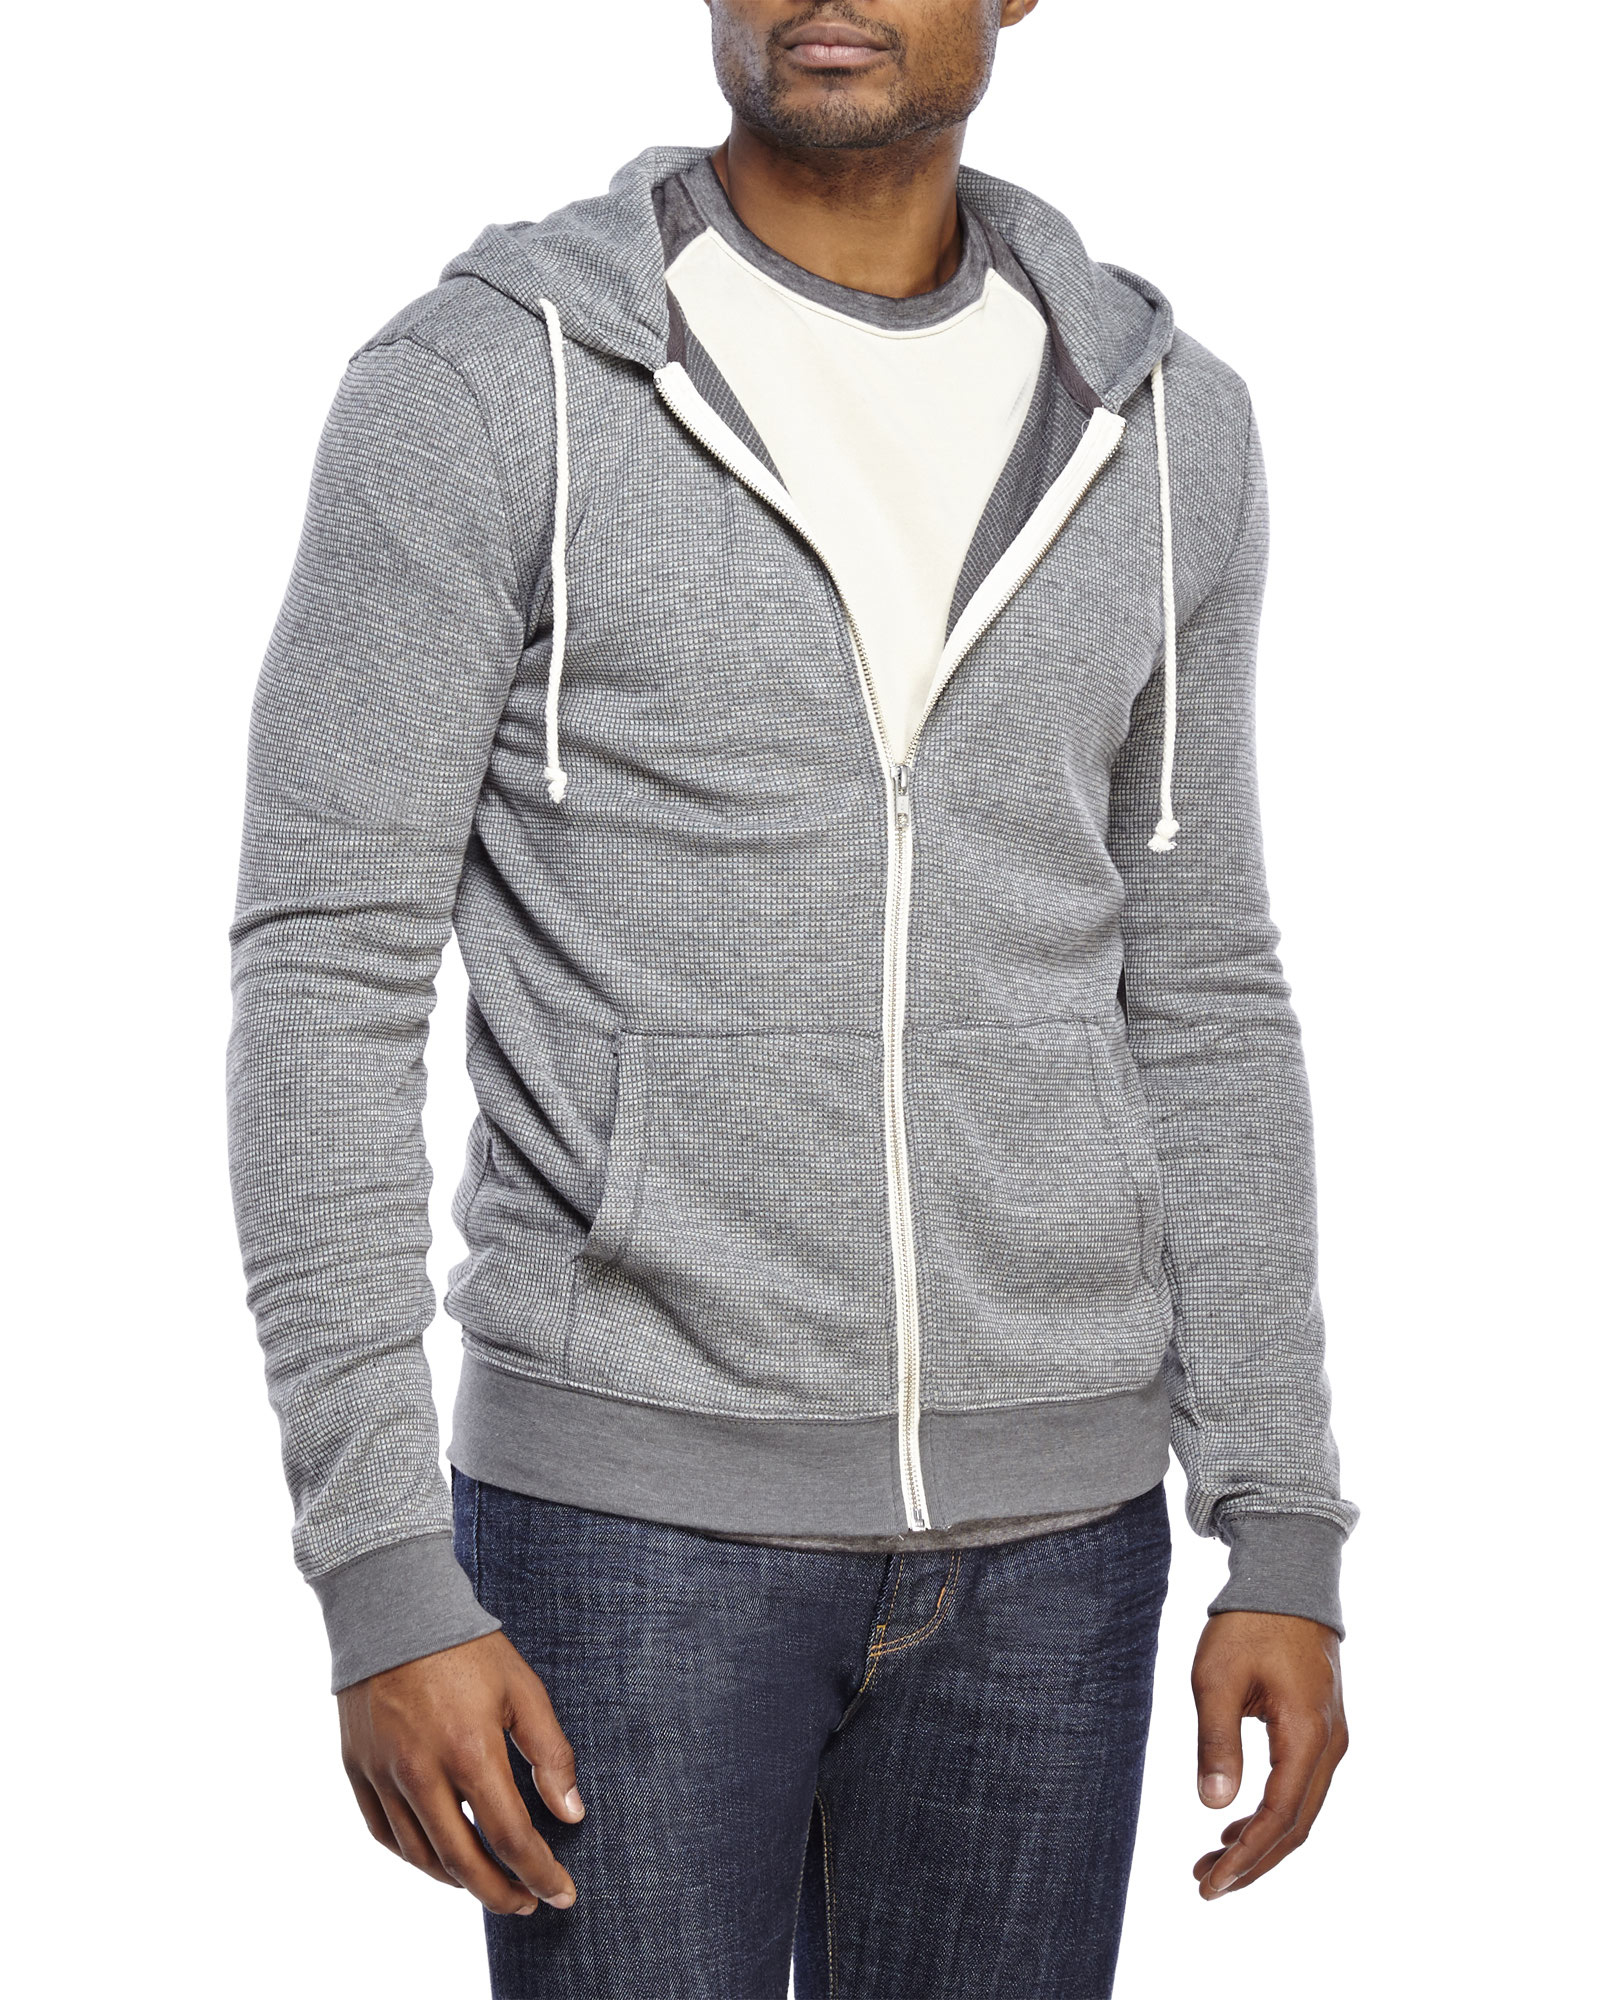 Lyst - Threads For Thought Thermal Zip-Up Hoodie in Metallic for Men 5eb1c5e9271